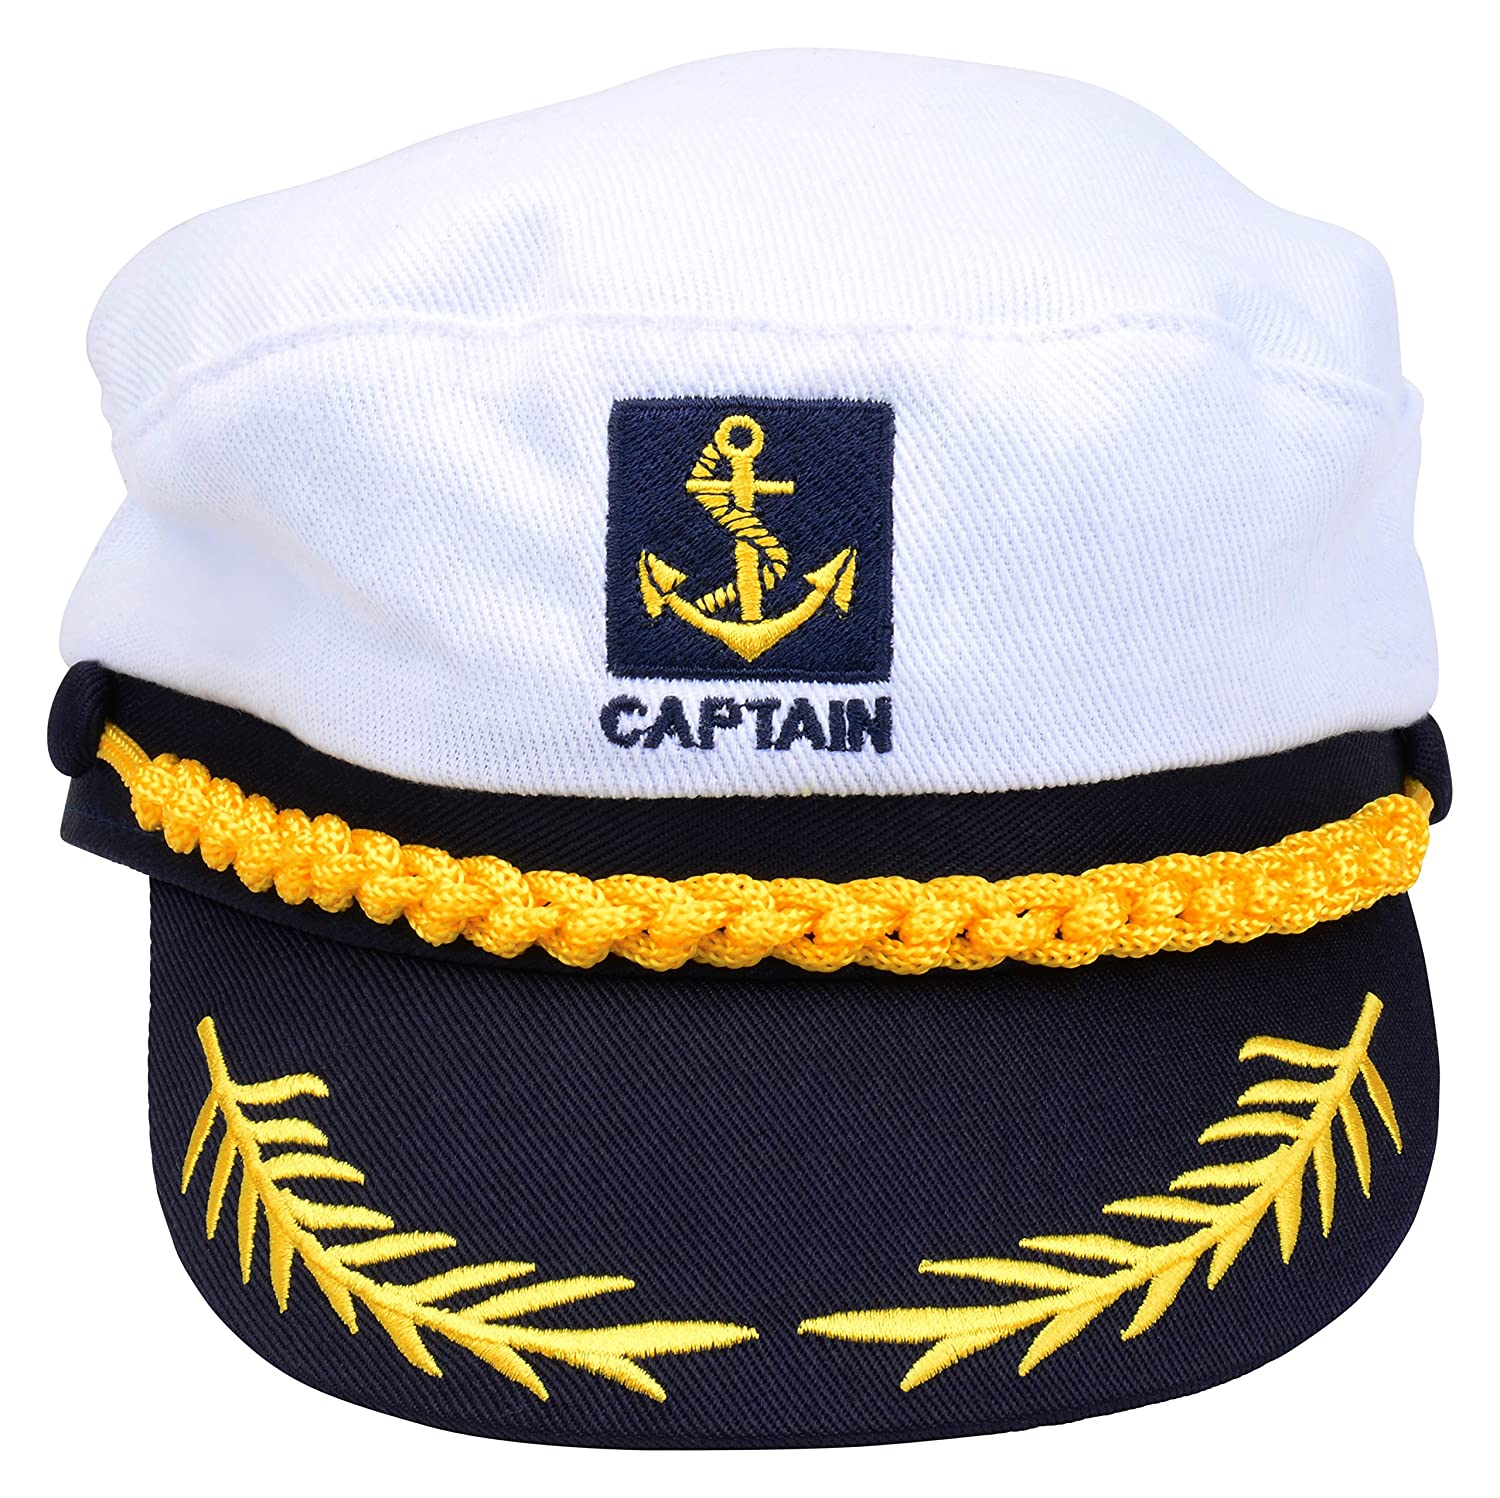 1ebb15a2905 Amazon.com  Perfect Order Adult Captains Hat Yacht Cap Standard (Black)   Clothing